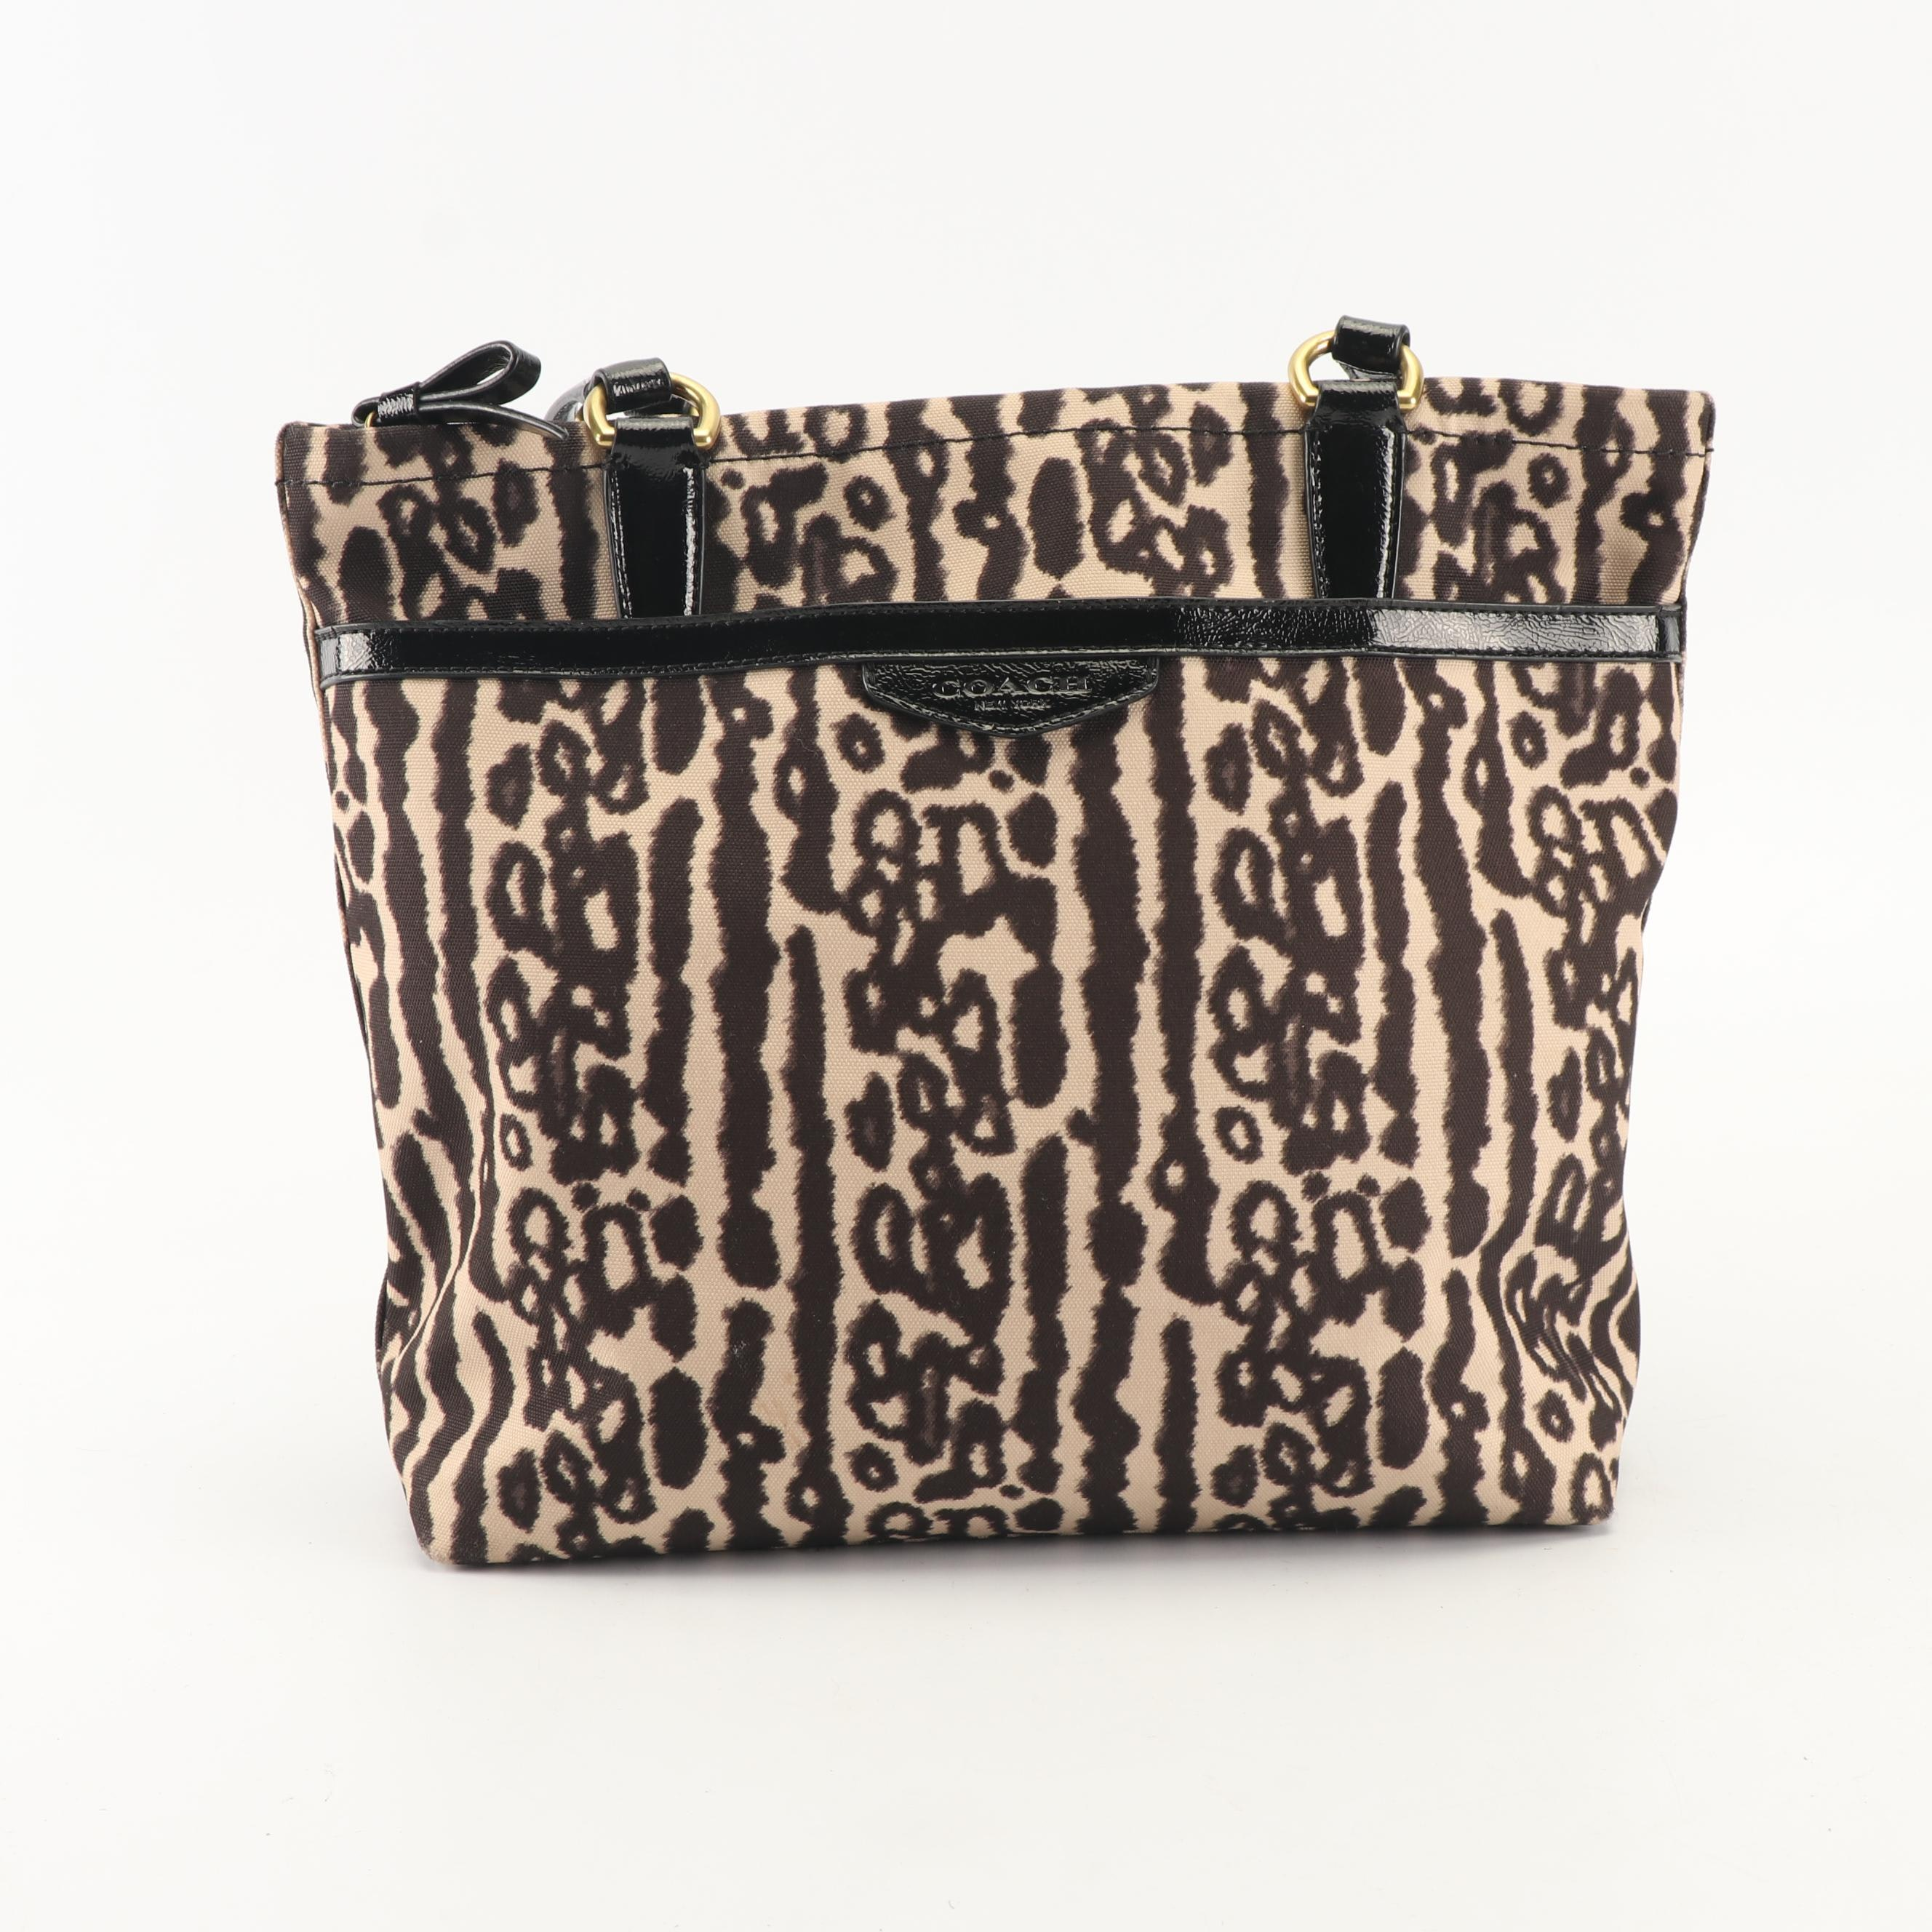 2014 Coach Ocelot Print Canvas and Patent Leather Tote